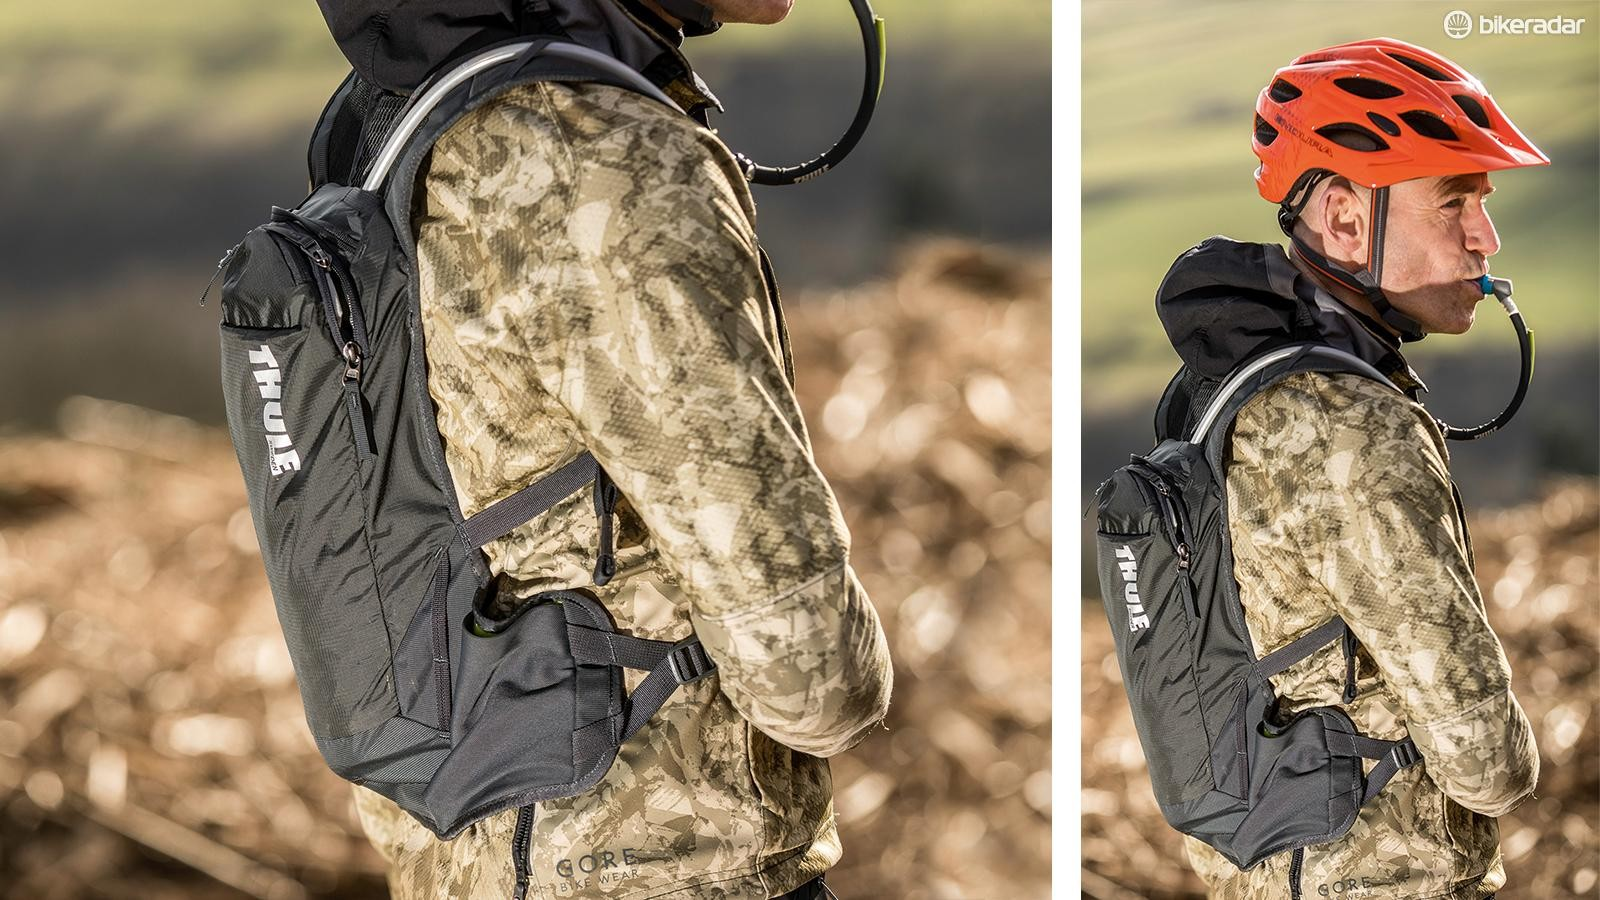 Hydration packs come in a variety of different sizes to suit everything from short rides to multi-day epics